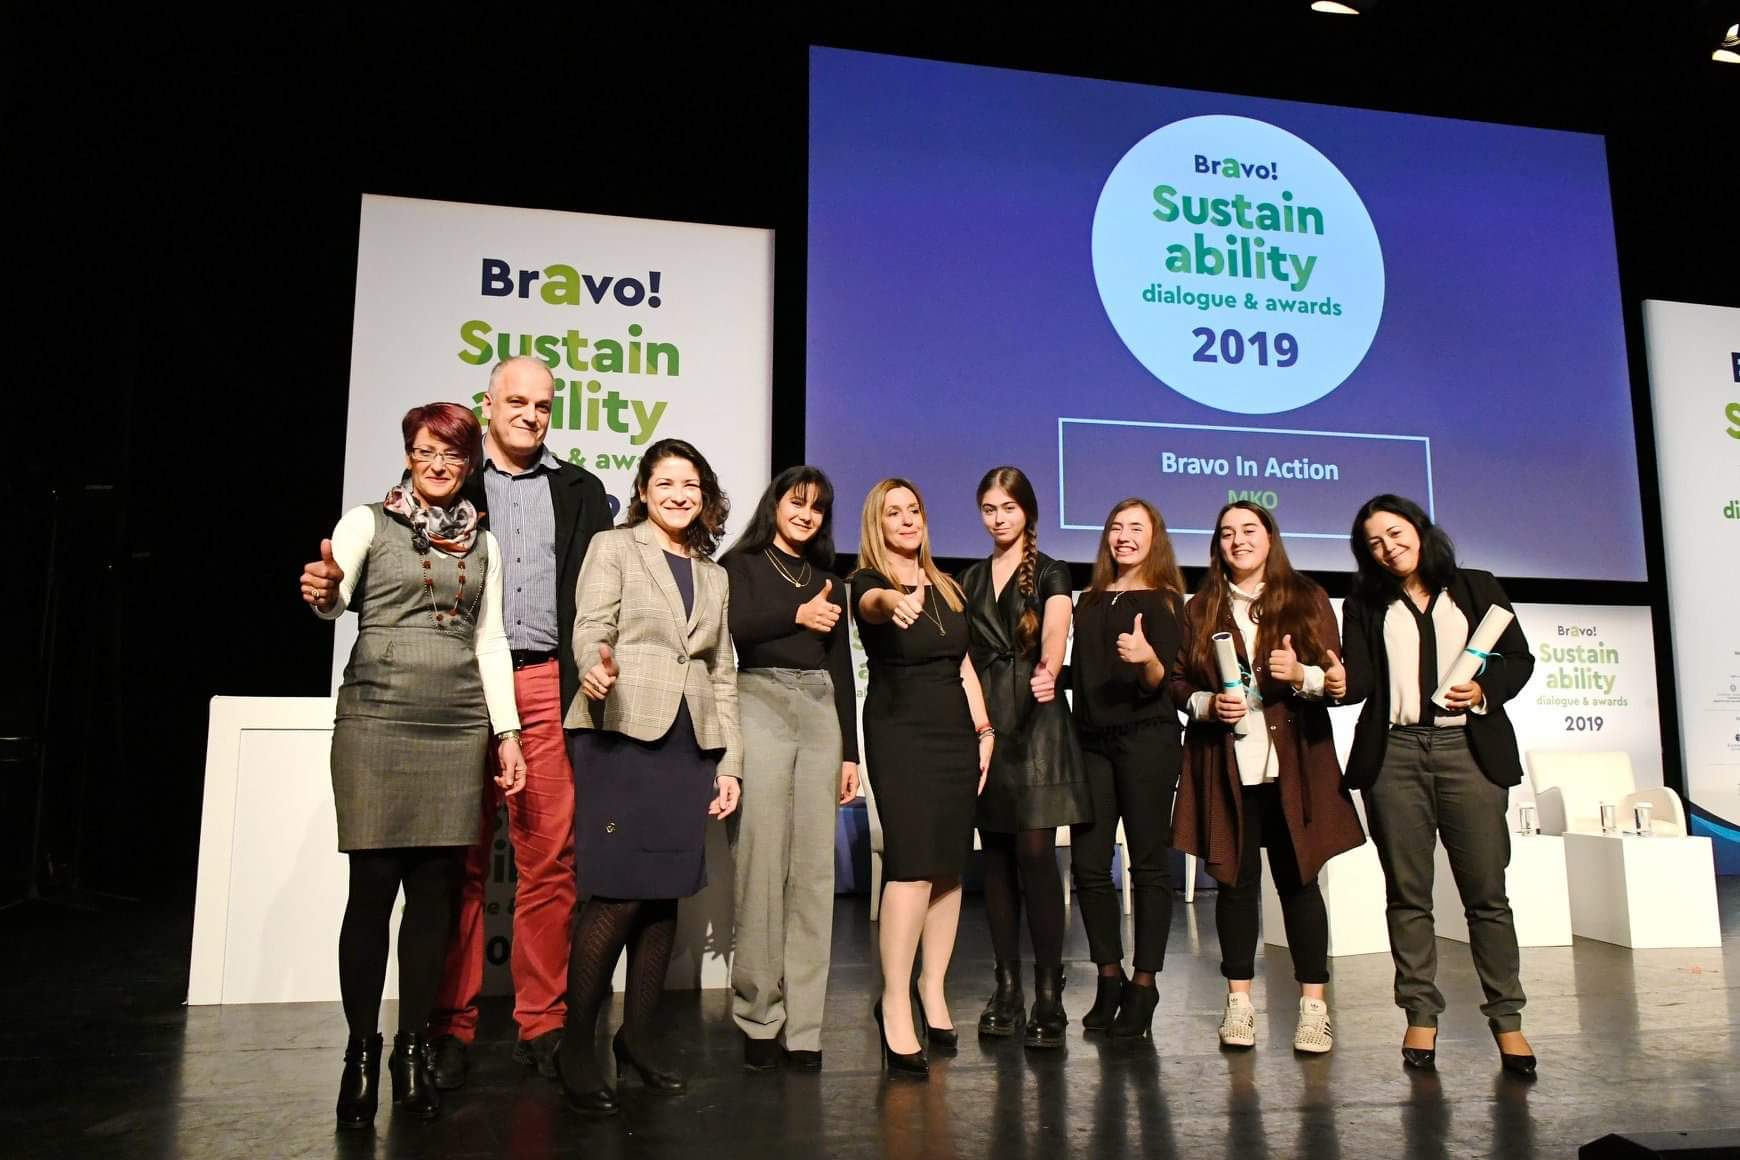 Award for the Municipality of Fyli and the Secondary Education Schools in the Bravo Sustainability Dialogue & Awards 2019